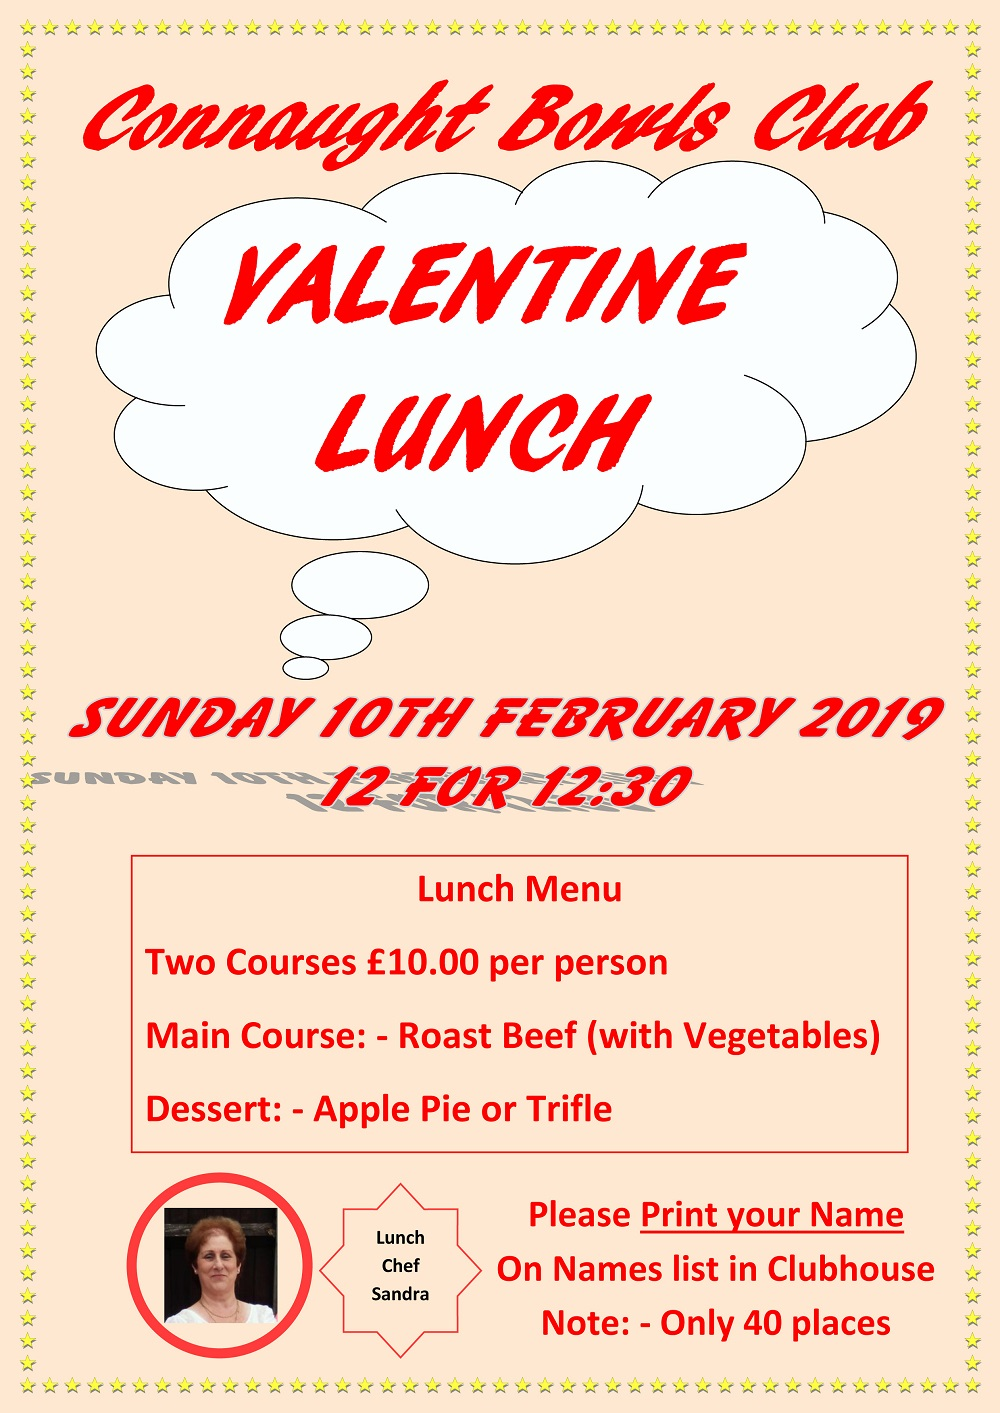 valentine-lunch-10th-feb-2019-poster-web-copy.jpg